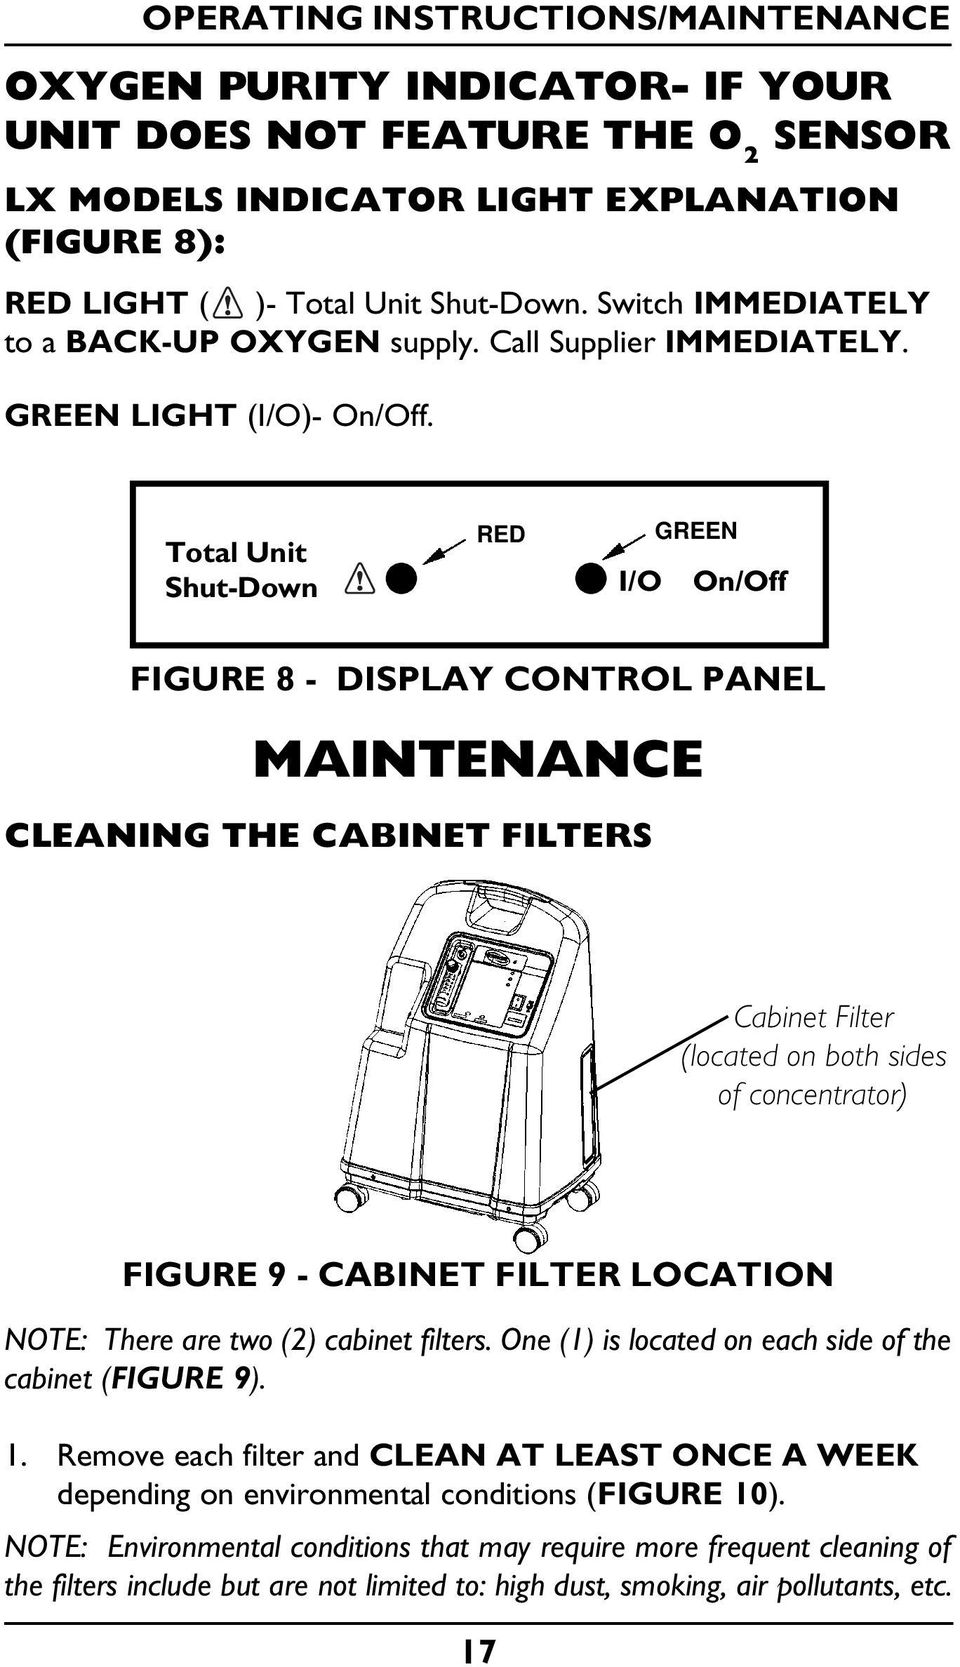 Total Unit Shut-Down RED I/O GREEN On/Off FIGURE 8 - DISPLAY CONTROL PANEL MAINTENANCE CLEANING THE CABINET FILTERS Cabinet Filter (located on both sides of concentrator) FIGURE 9 - CABINET FILTER